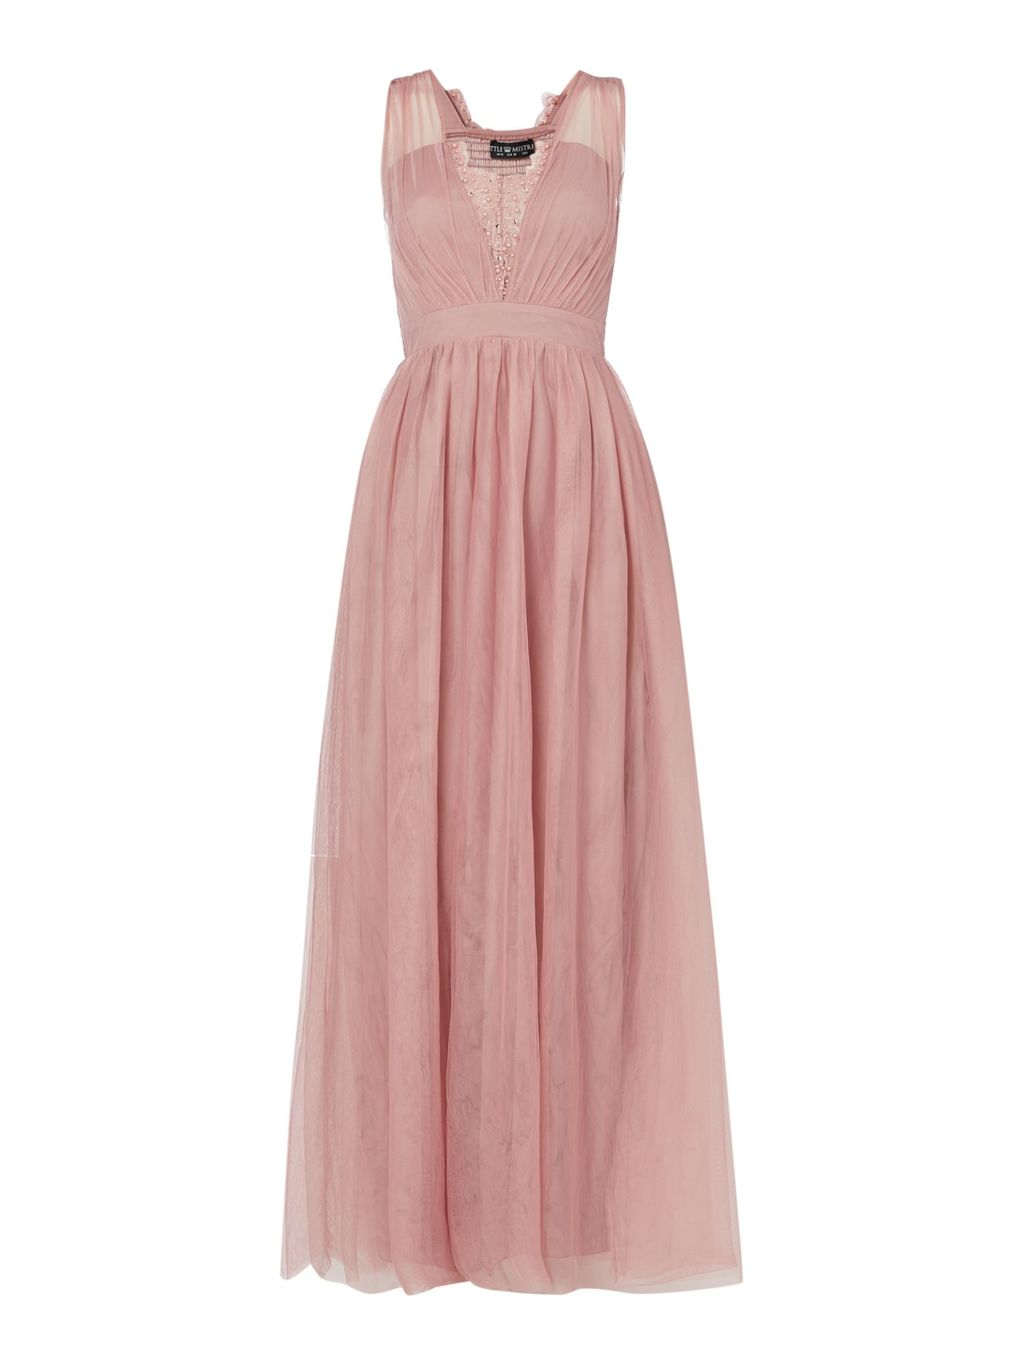 Sleeveless Chiffon Maxi Dress, Pink - sleeve style: wide vest straps; neckline: v-neck; pattern: plain; style: maxi dress; length: ankle length; predominant colour: pink; fit: soft a-line; fibres: polyester/polyamide - 100%; occasions: occasion; sleeve length: sleeveless; texture group: sheer fabrics/chiffon/organza etc.; pattern type: fabric; pattern size: standard; embellishment: beading; season: s/s 2016; wardrobe: event; embellishment location: bust